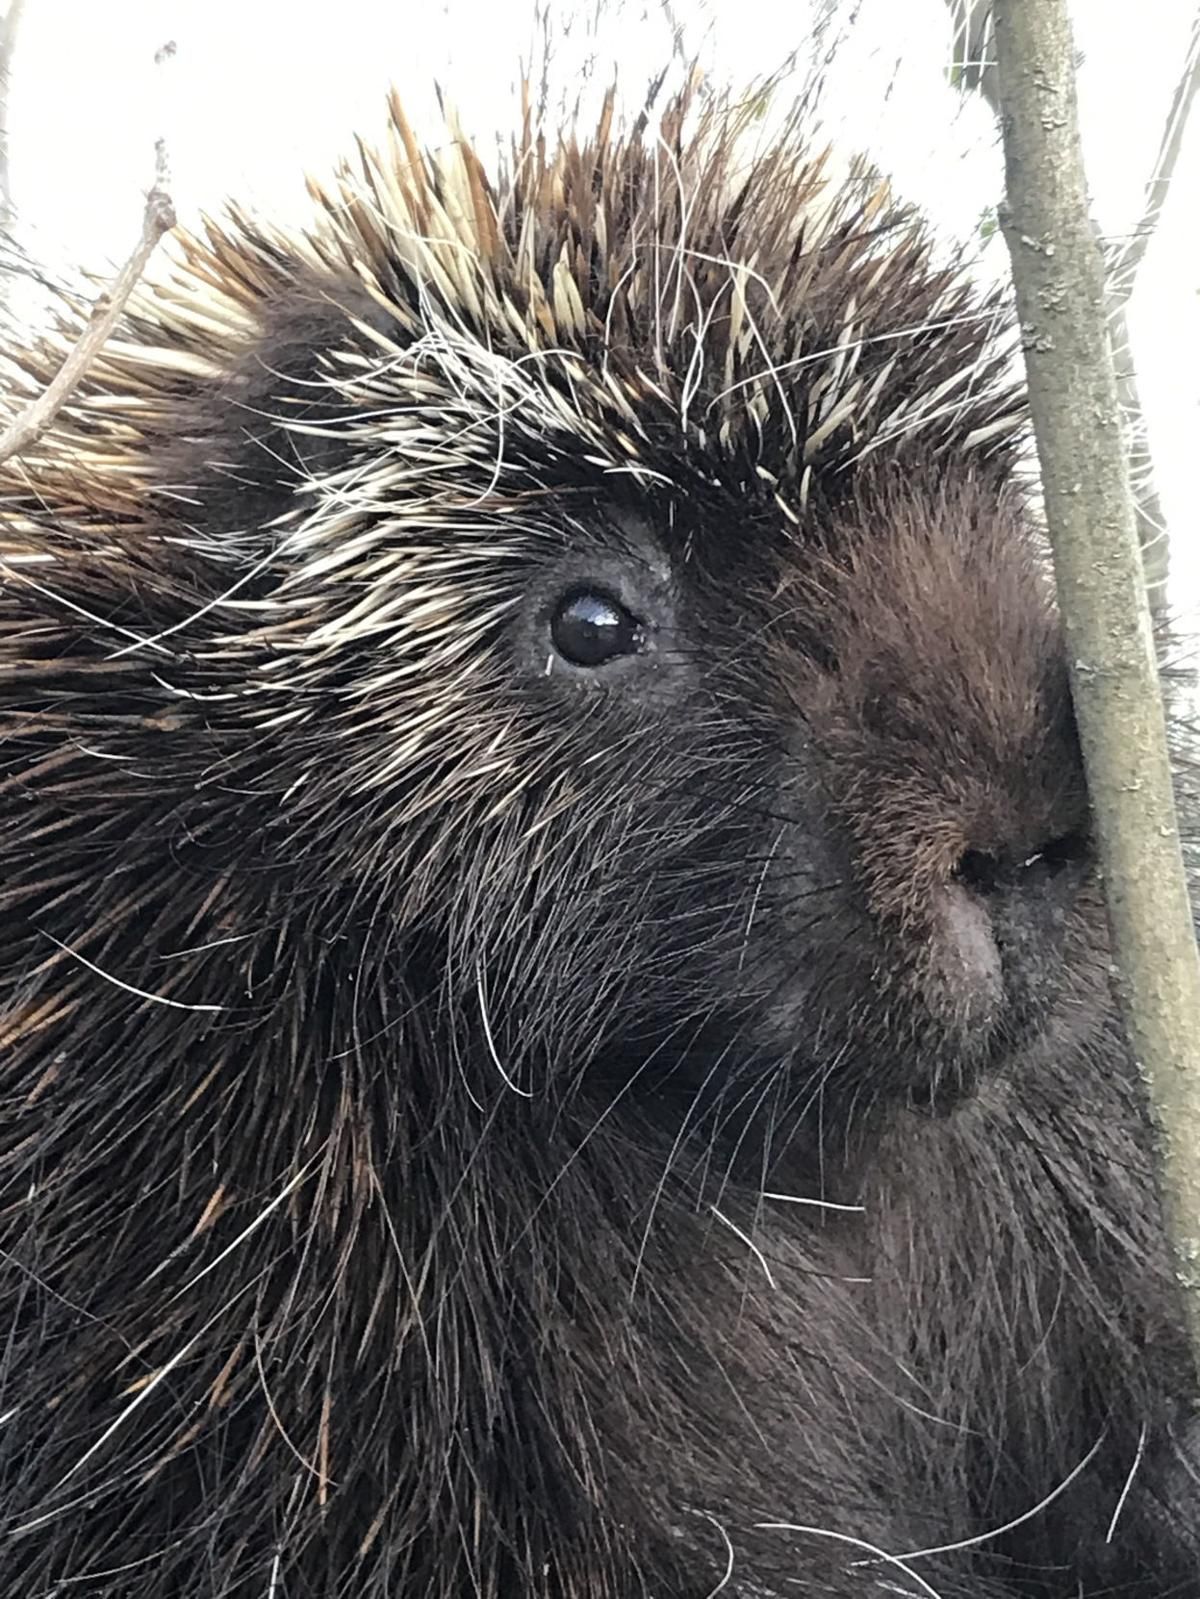 Porcupines: Scourge of the springtime willow tree